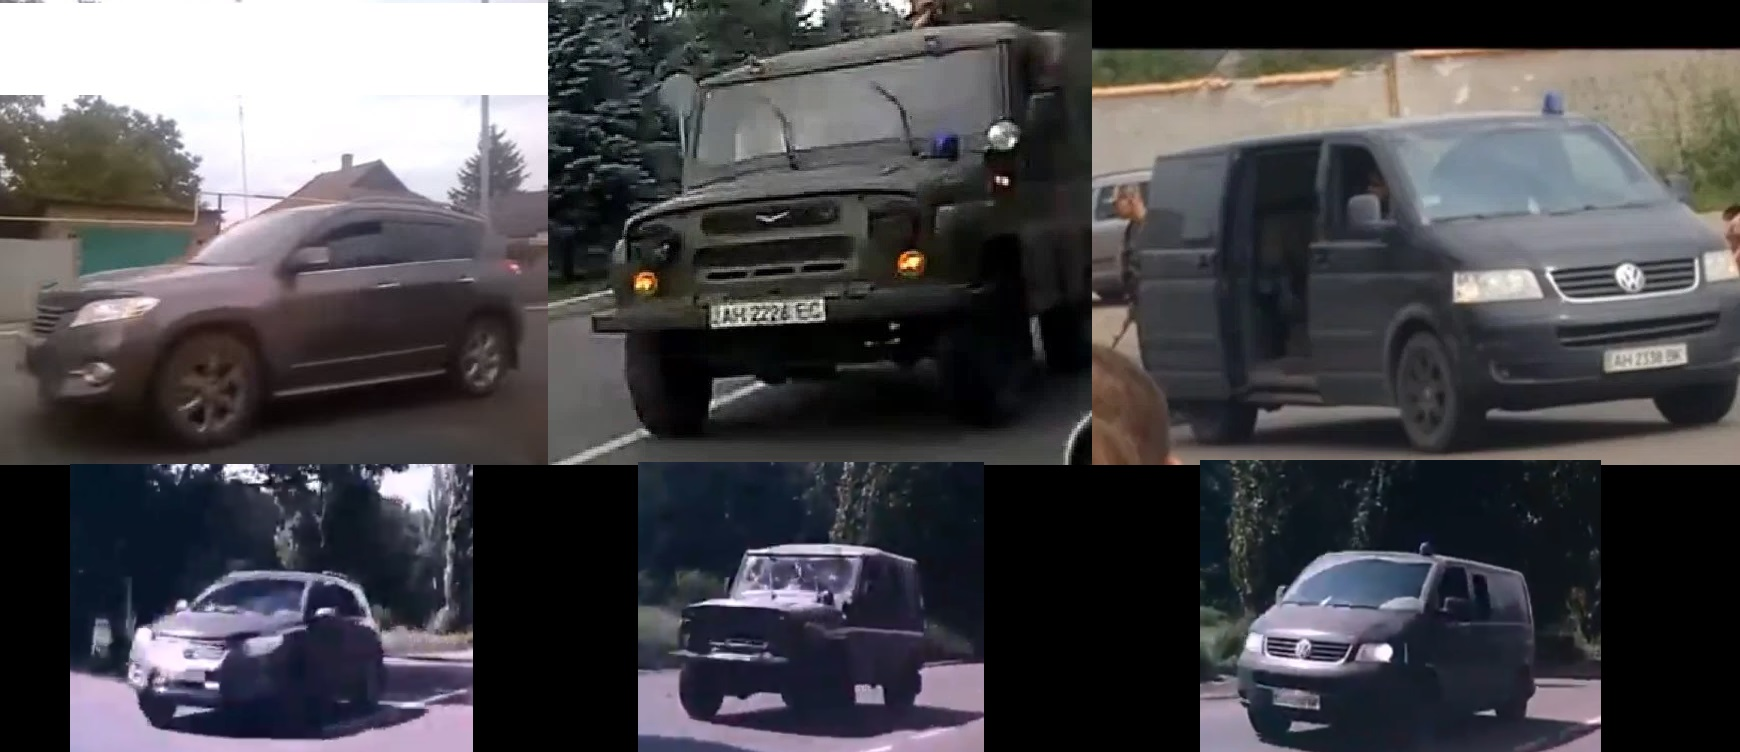 Comparison of videos from July 15 (top) and July 17 (bottom) in eastern Ukraine